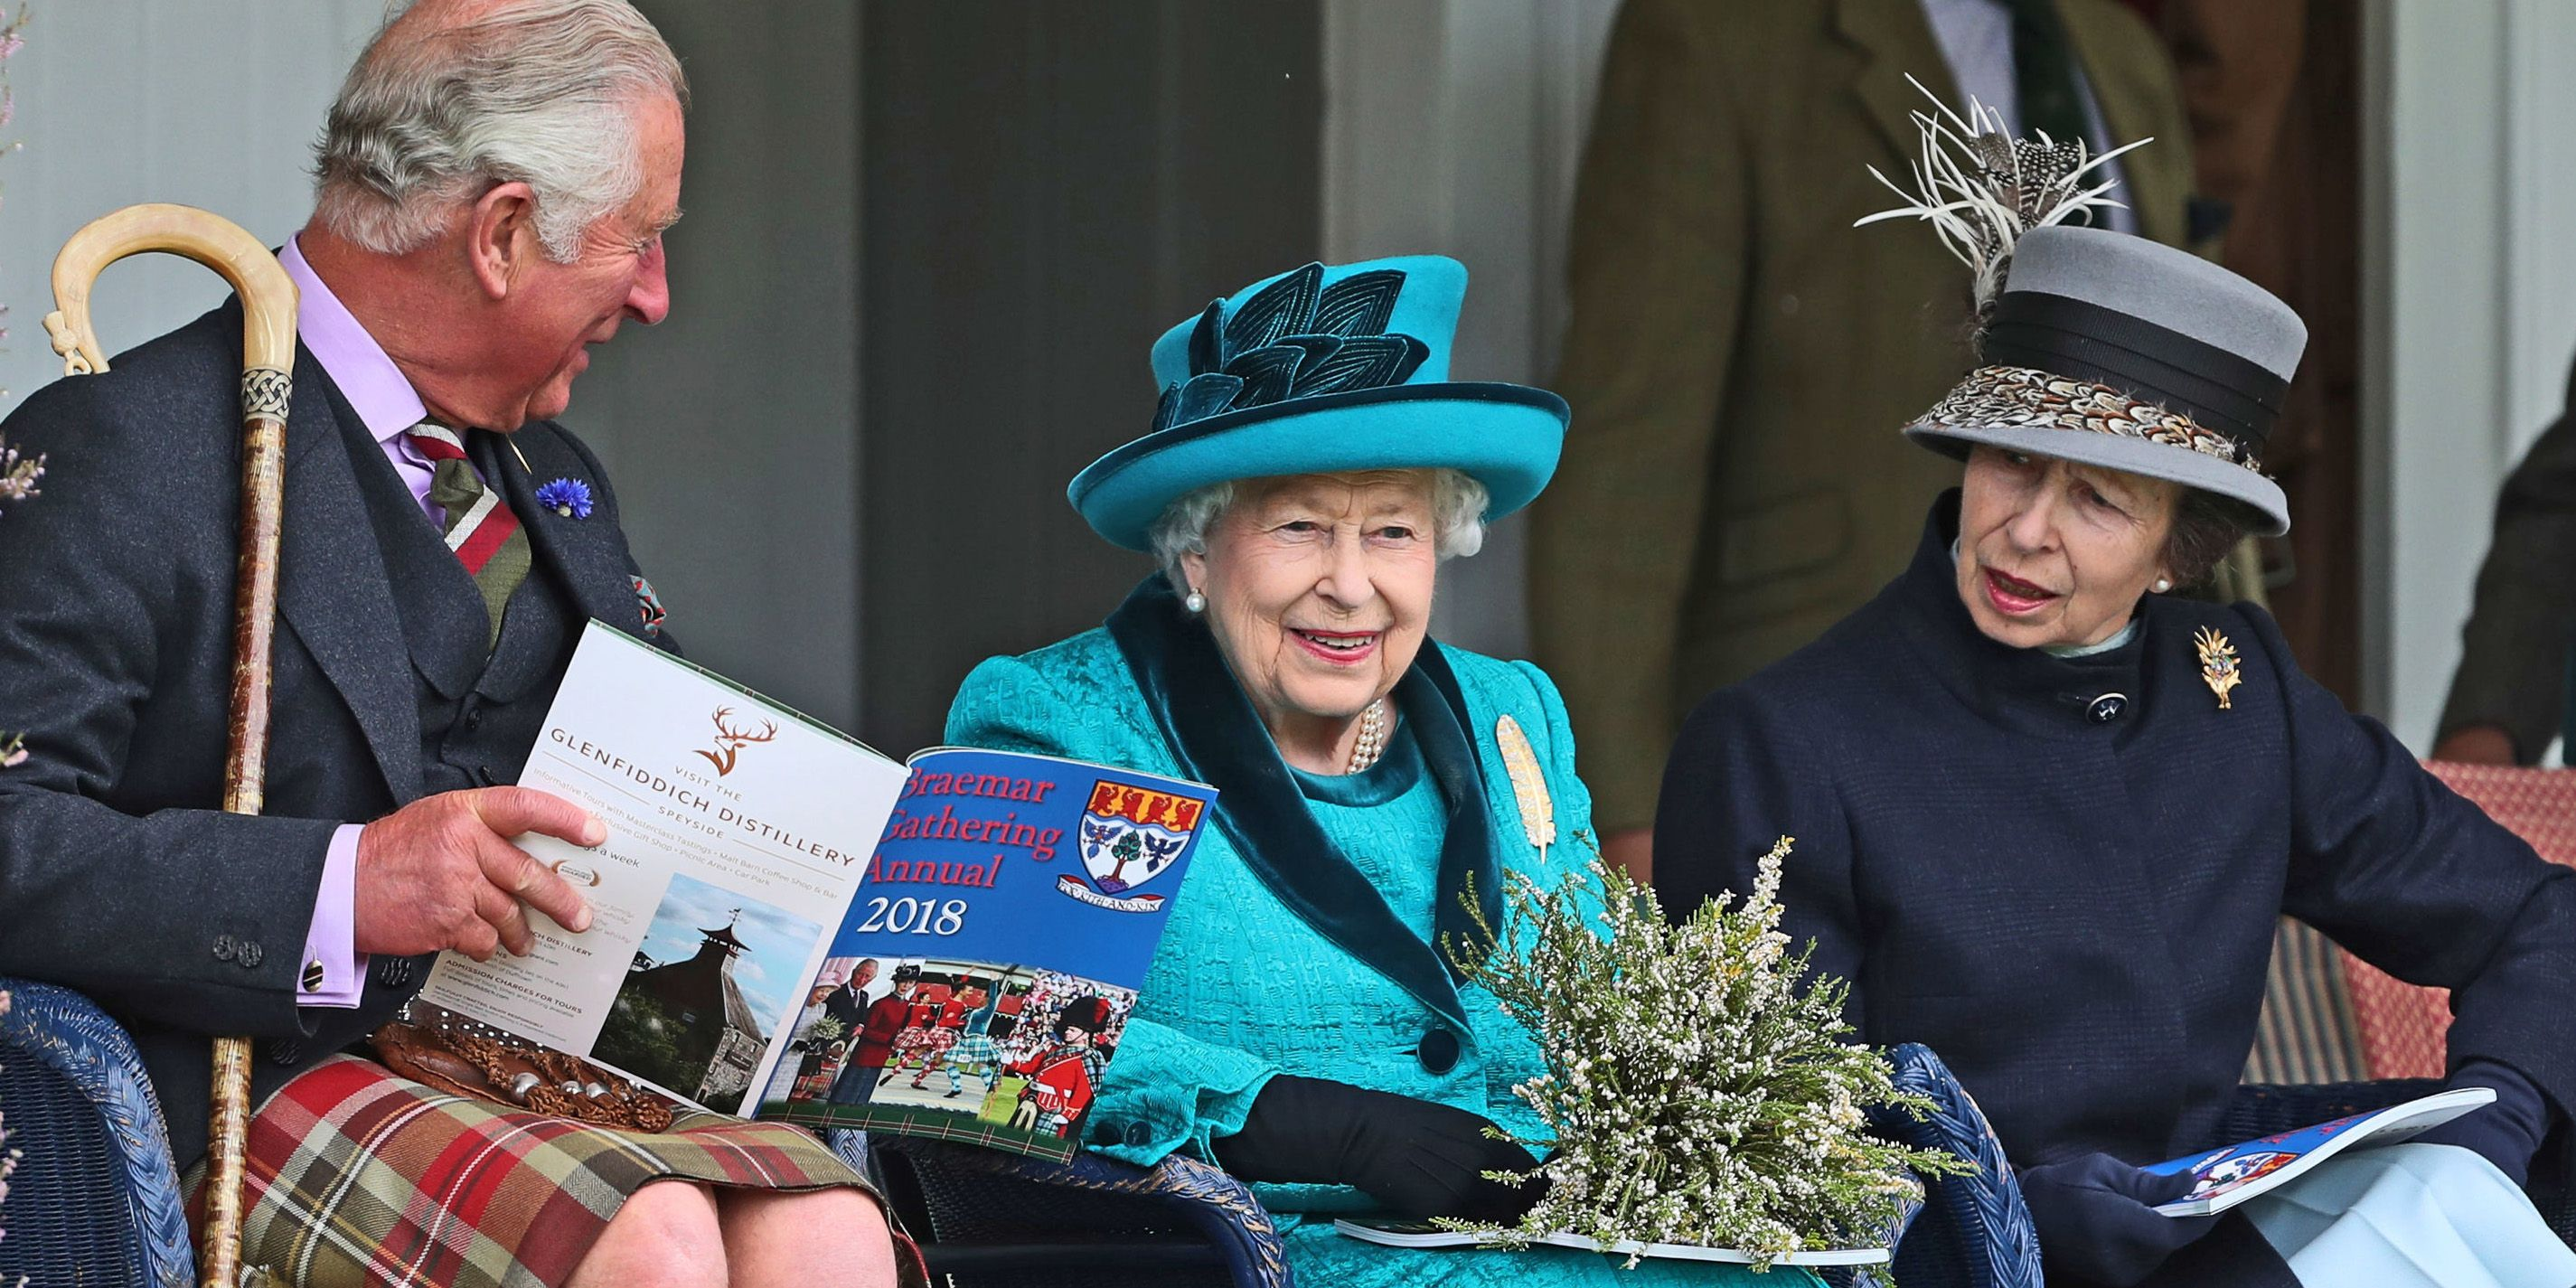 The Queen enjoys family day out at annual Braemar Gathering